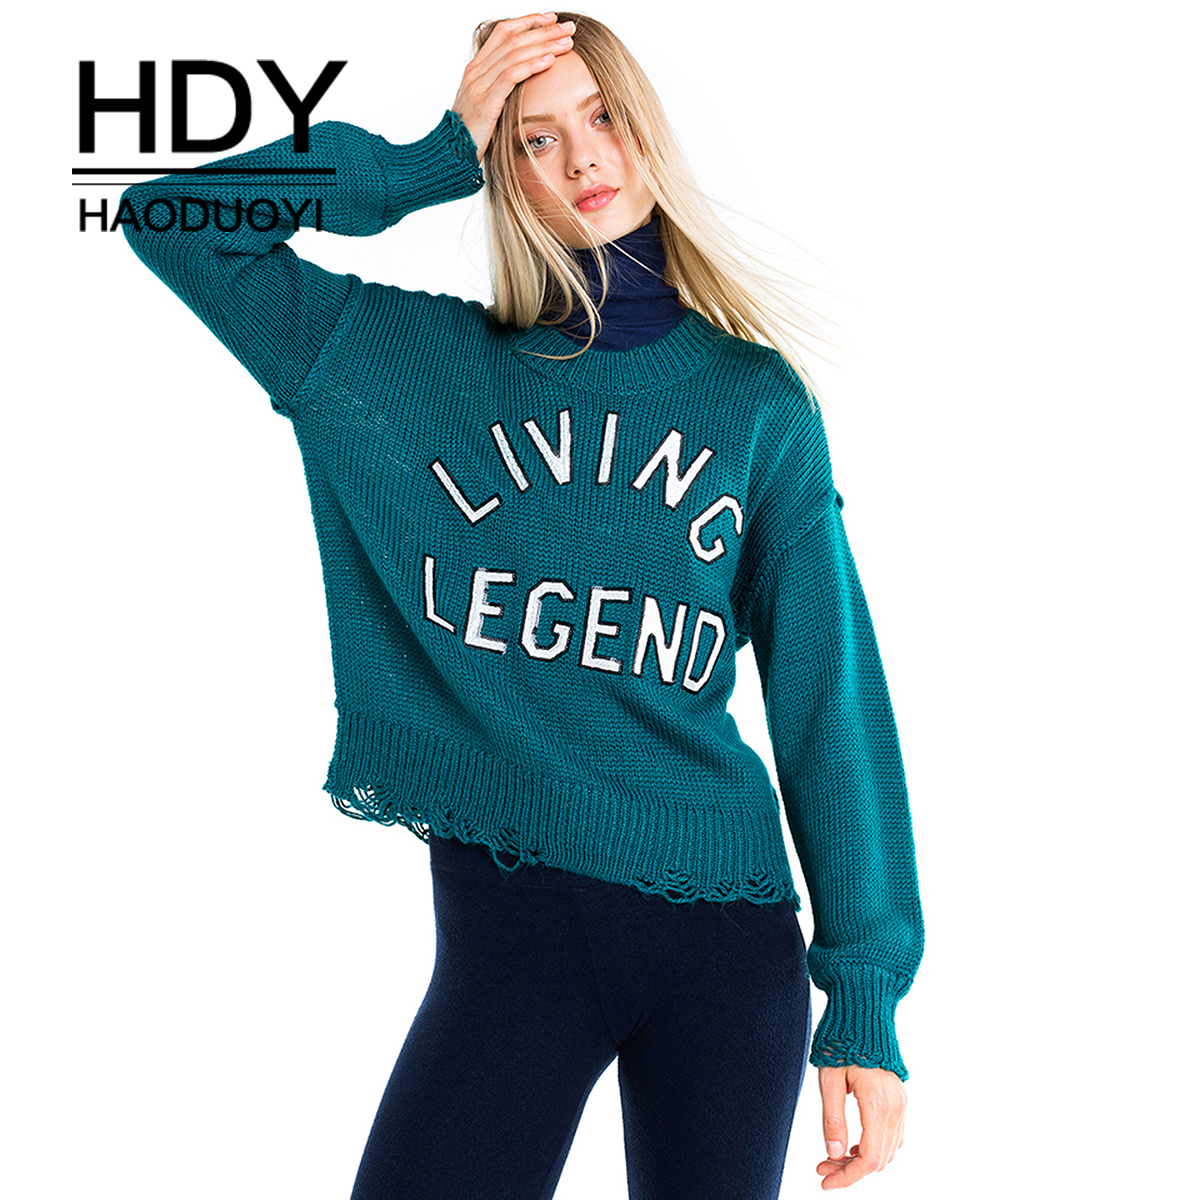 HDY haoduoyi Autumn winter women sweaters and pullovers korean style long sleeve casual solid color sweater